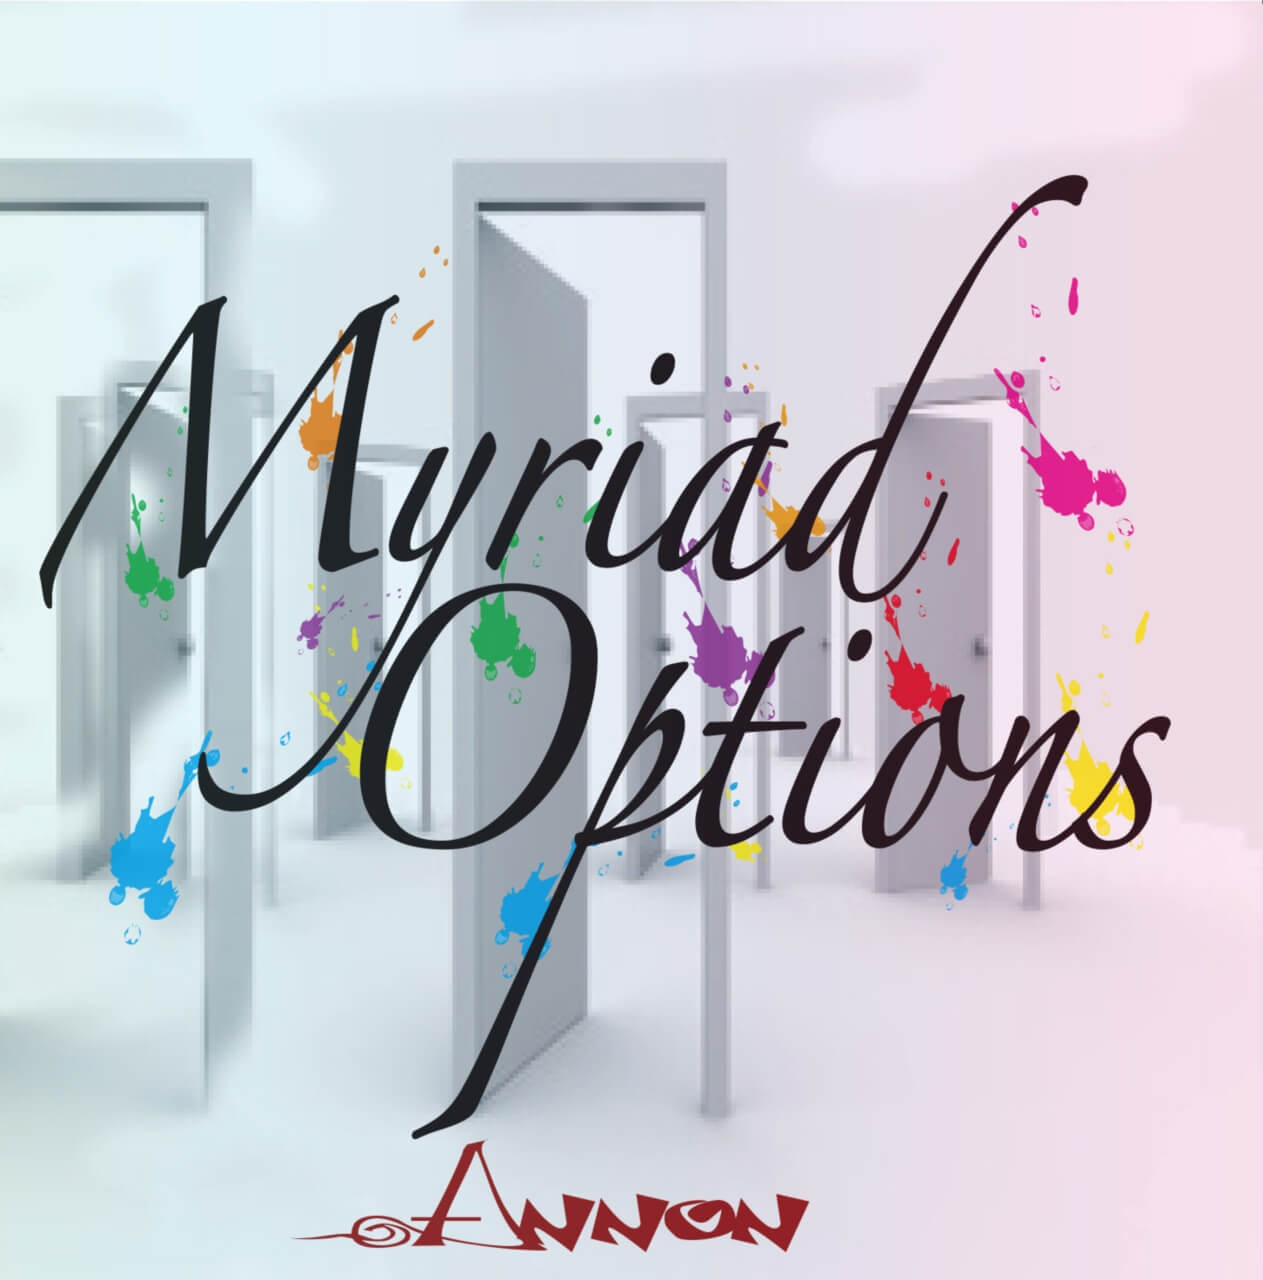 『Myriad Options』